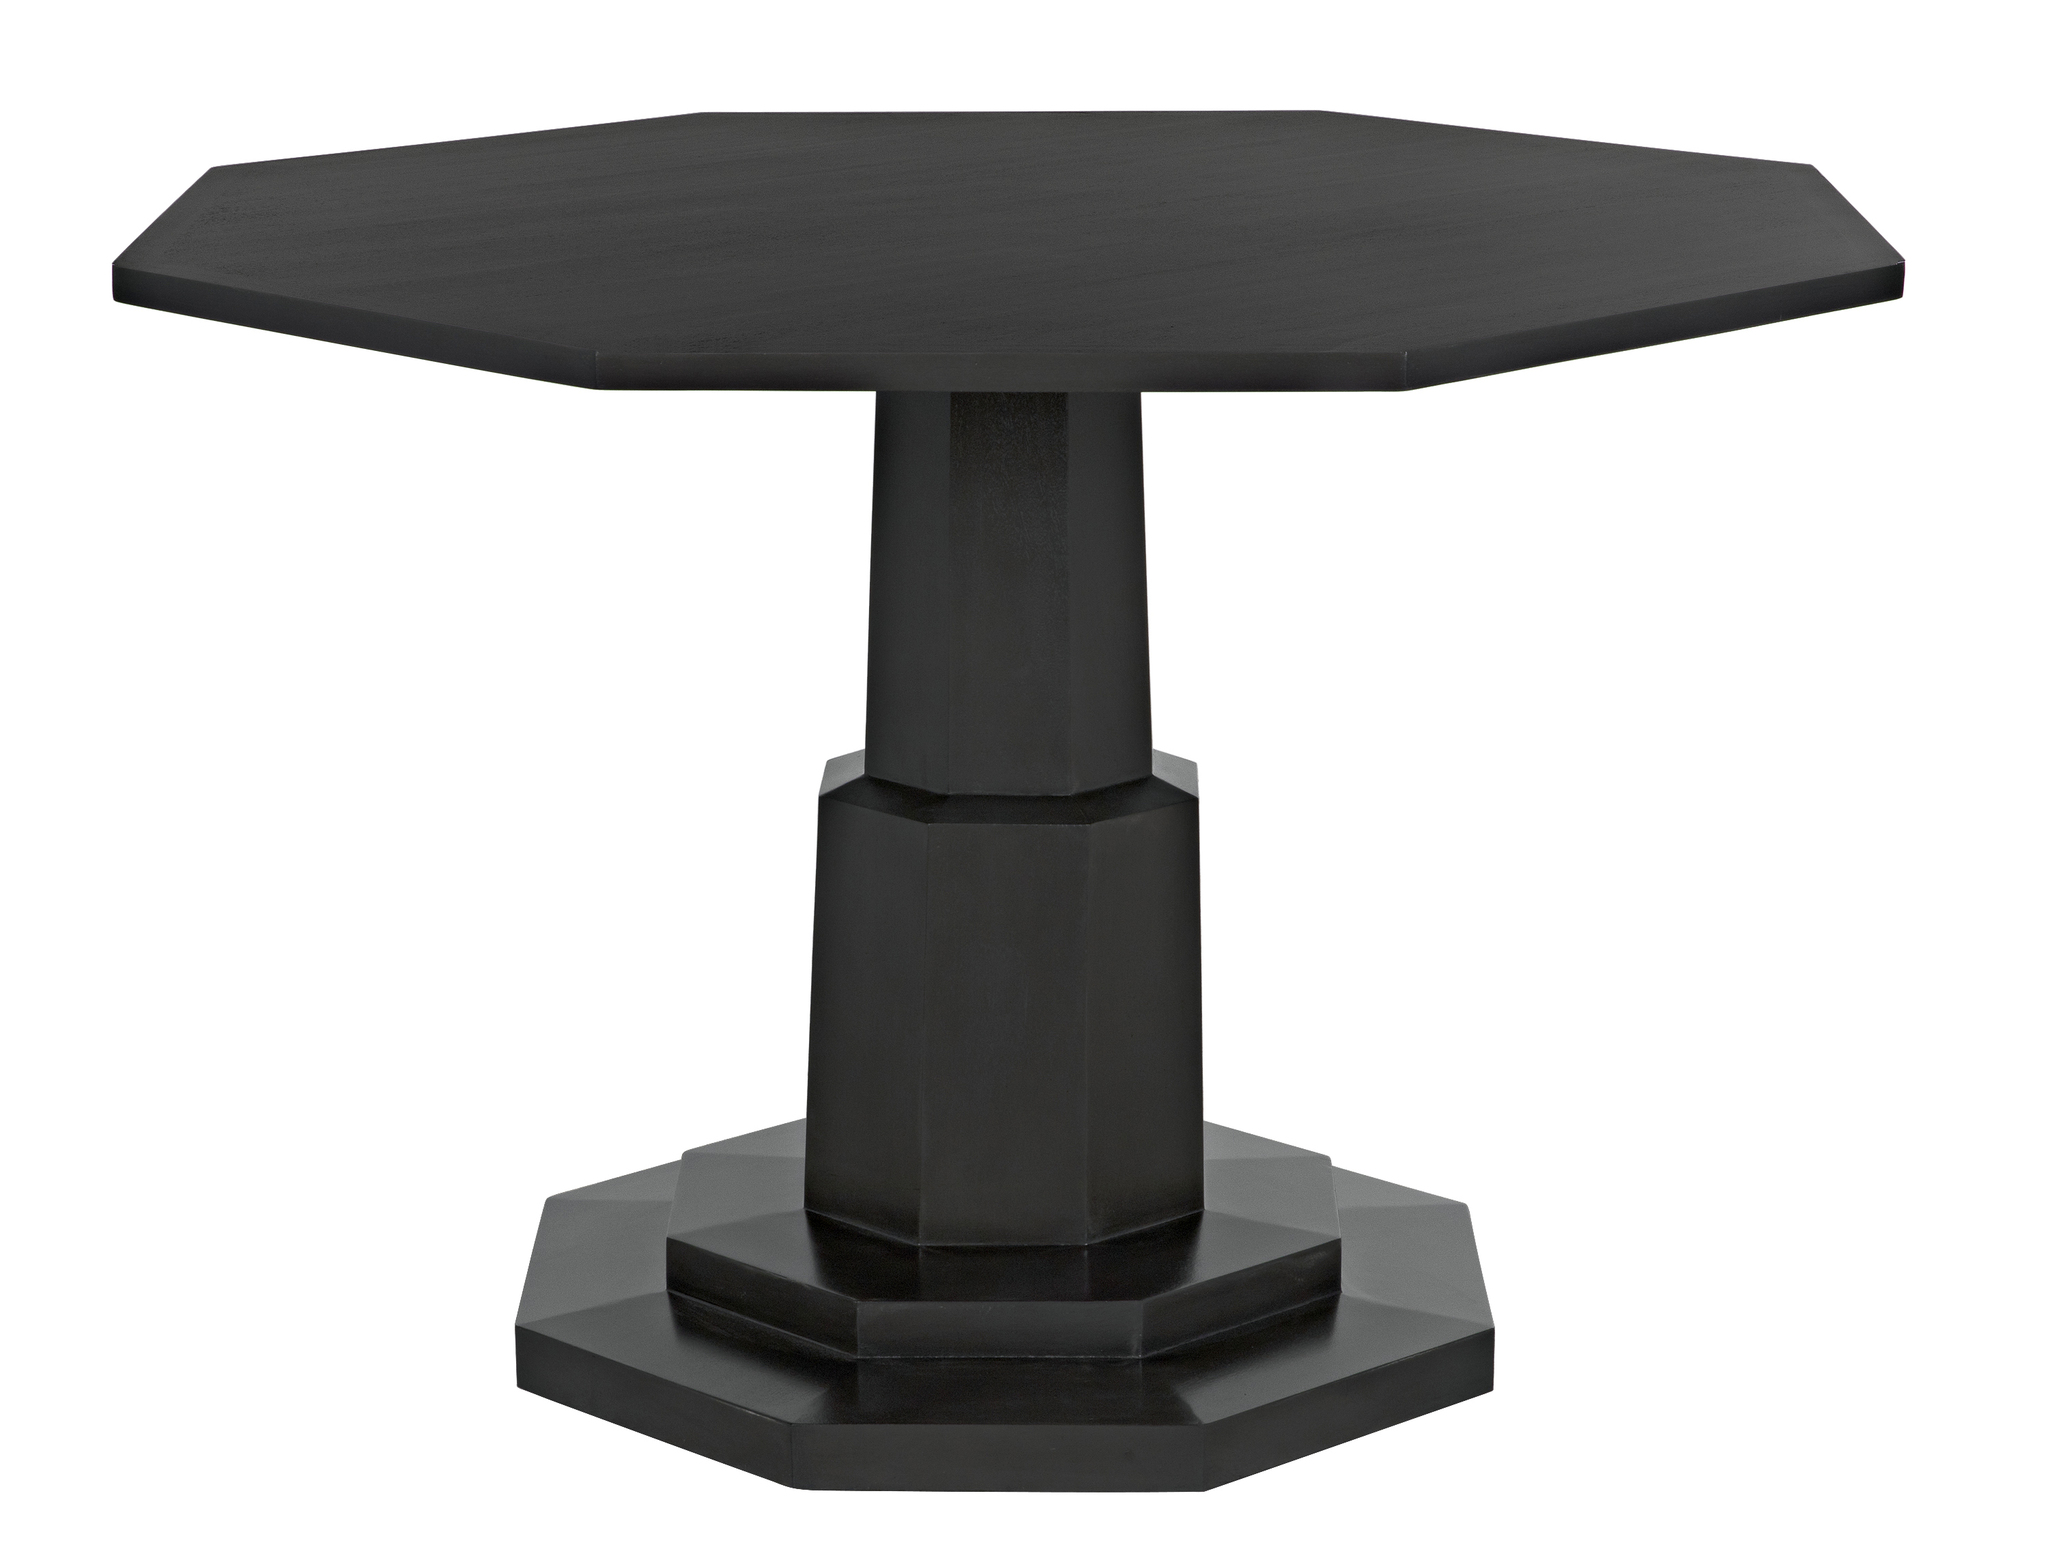 QS Octagon Table Pale dining tables